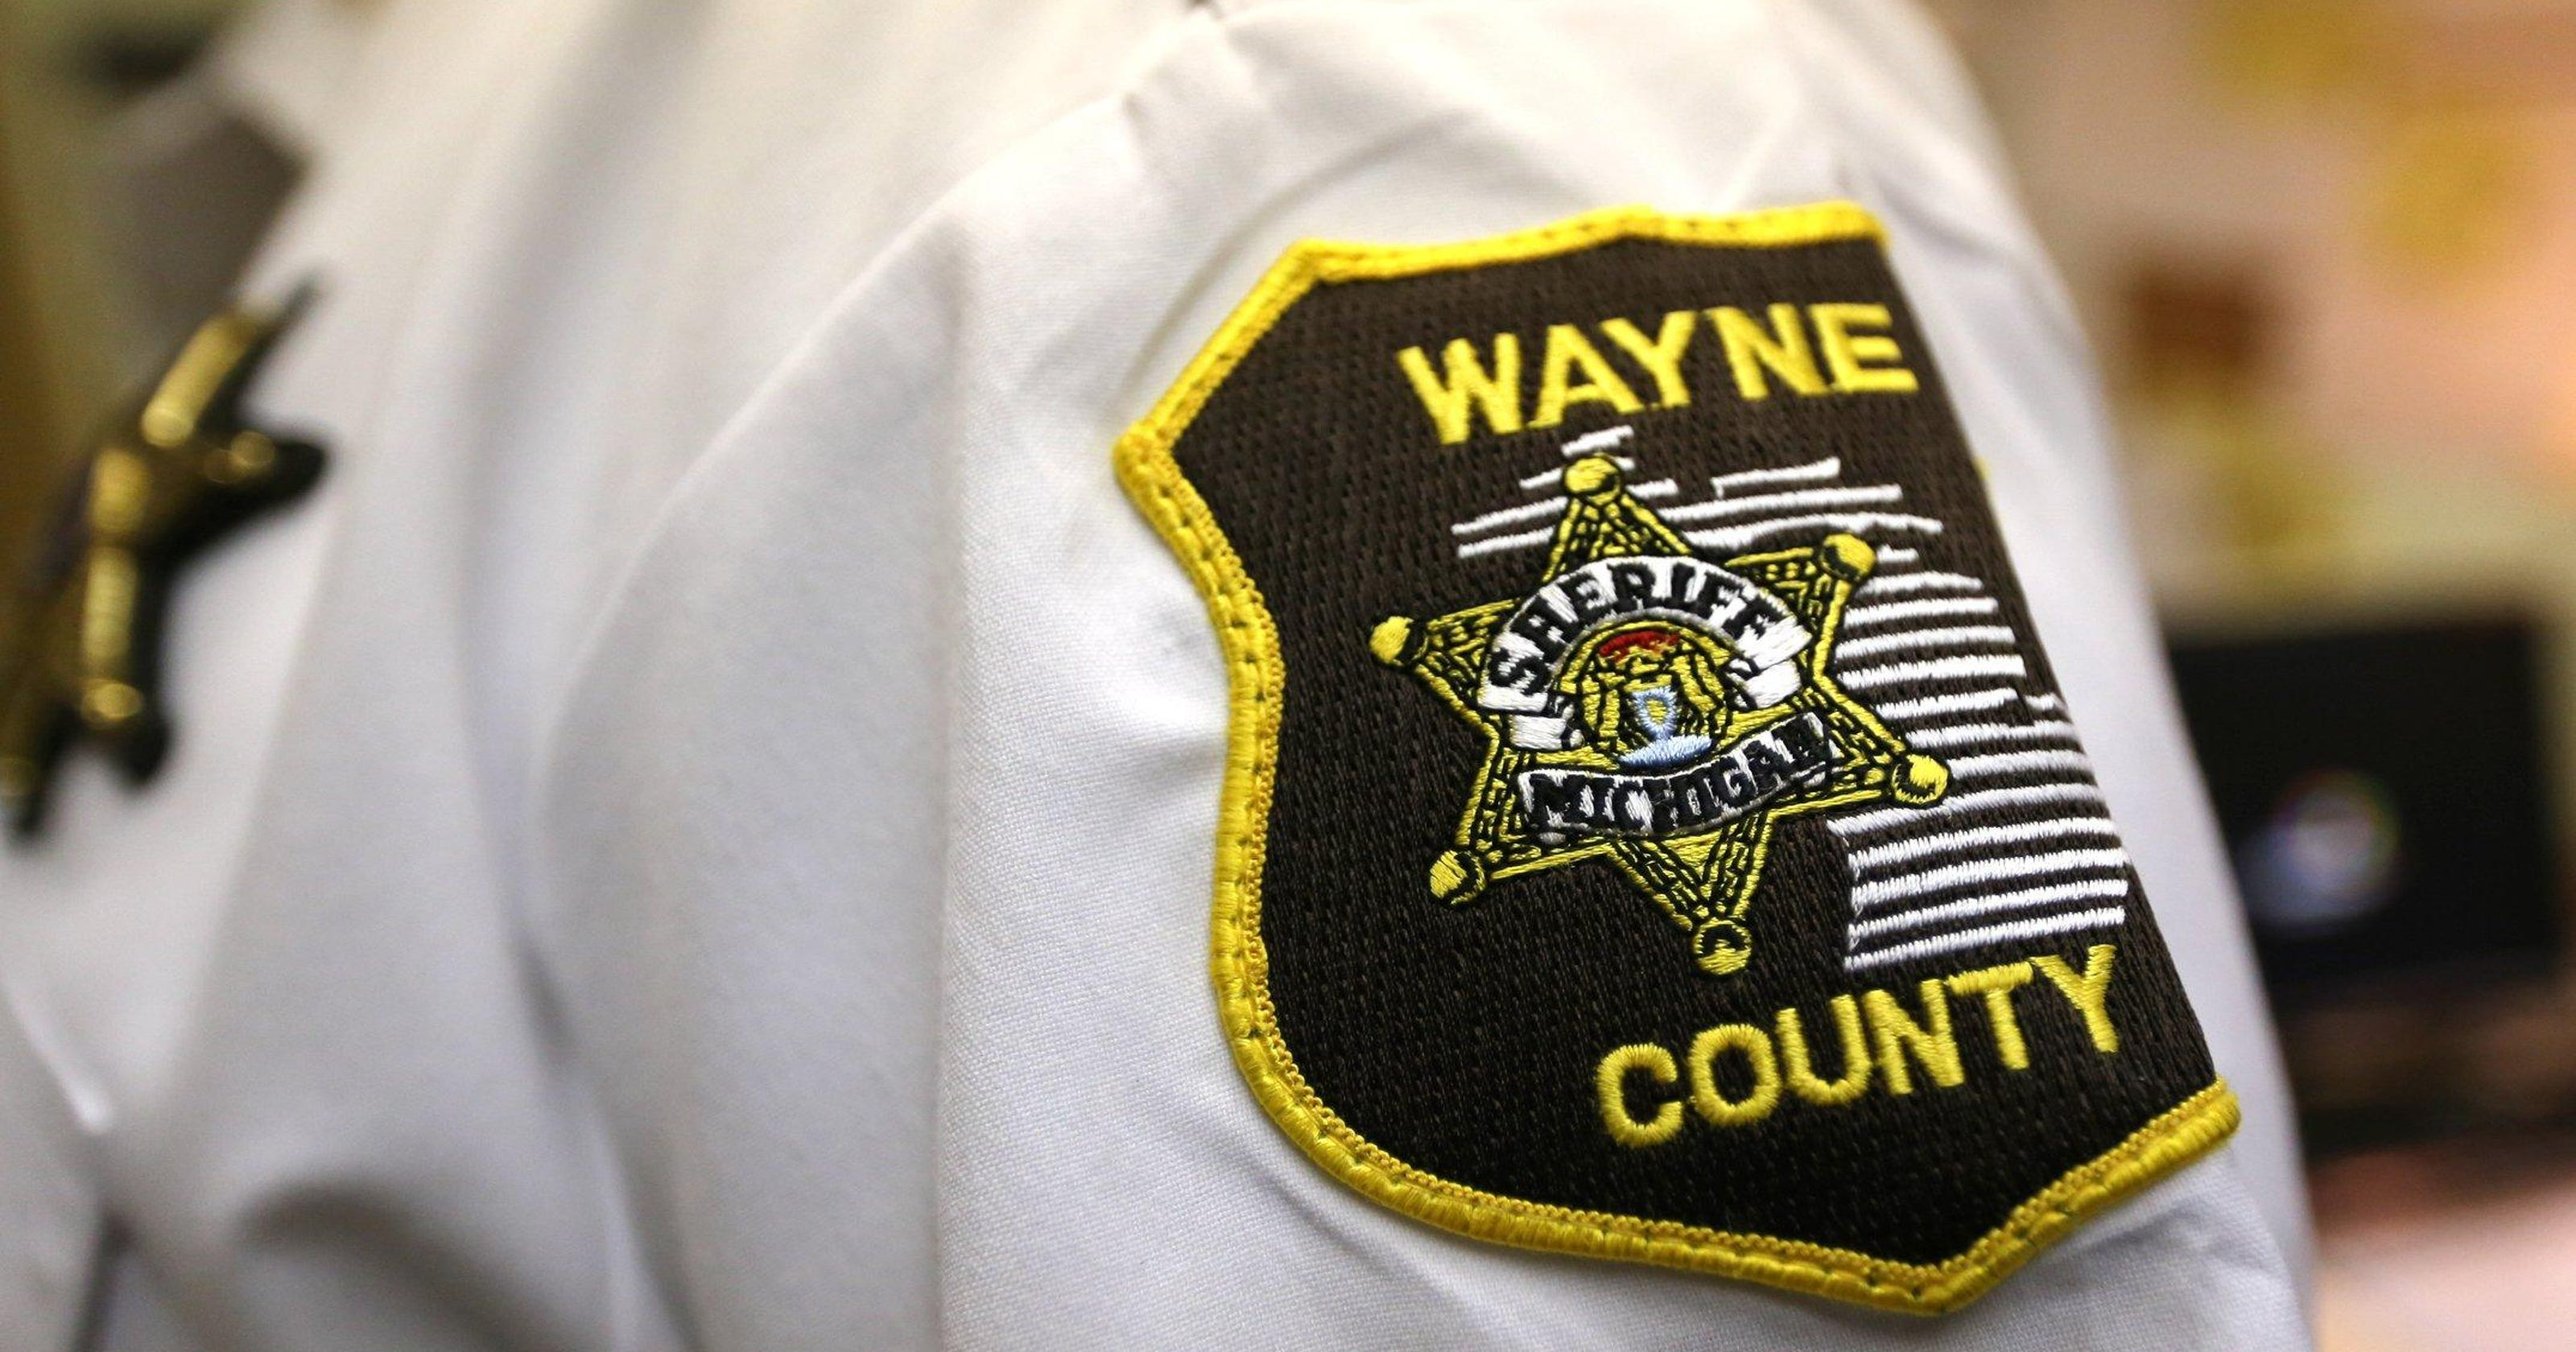 Wayne County sheriff's contract with WCCCD draws fire